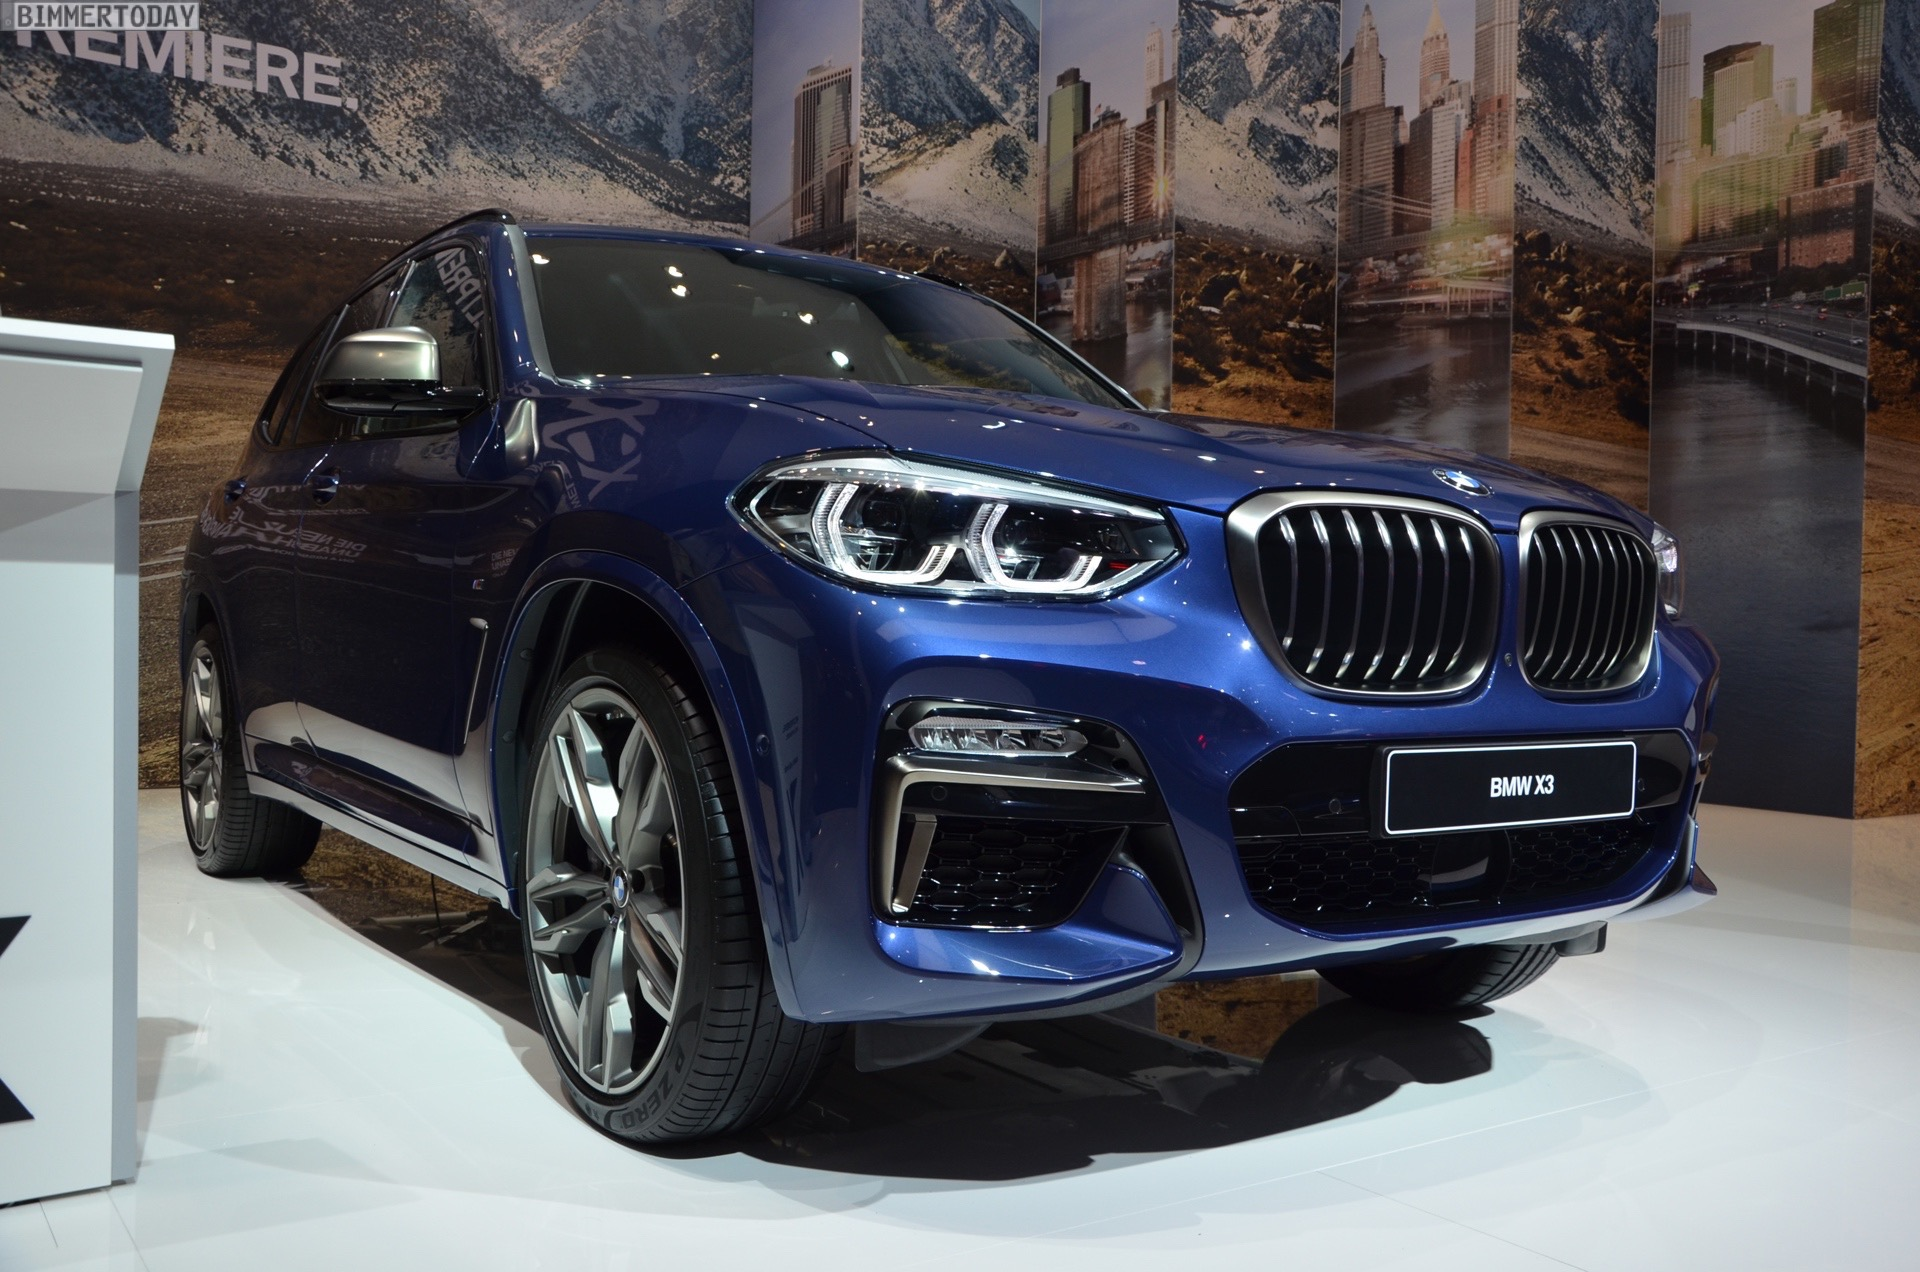 IAA 2017: BMW X3 M40i G01 in Phytonic Blue – Live-Fotos